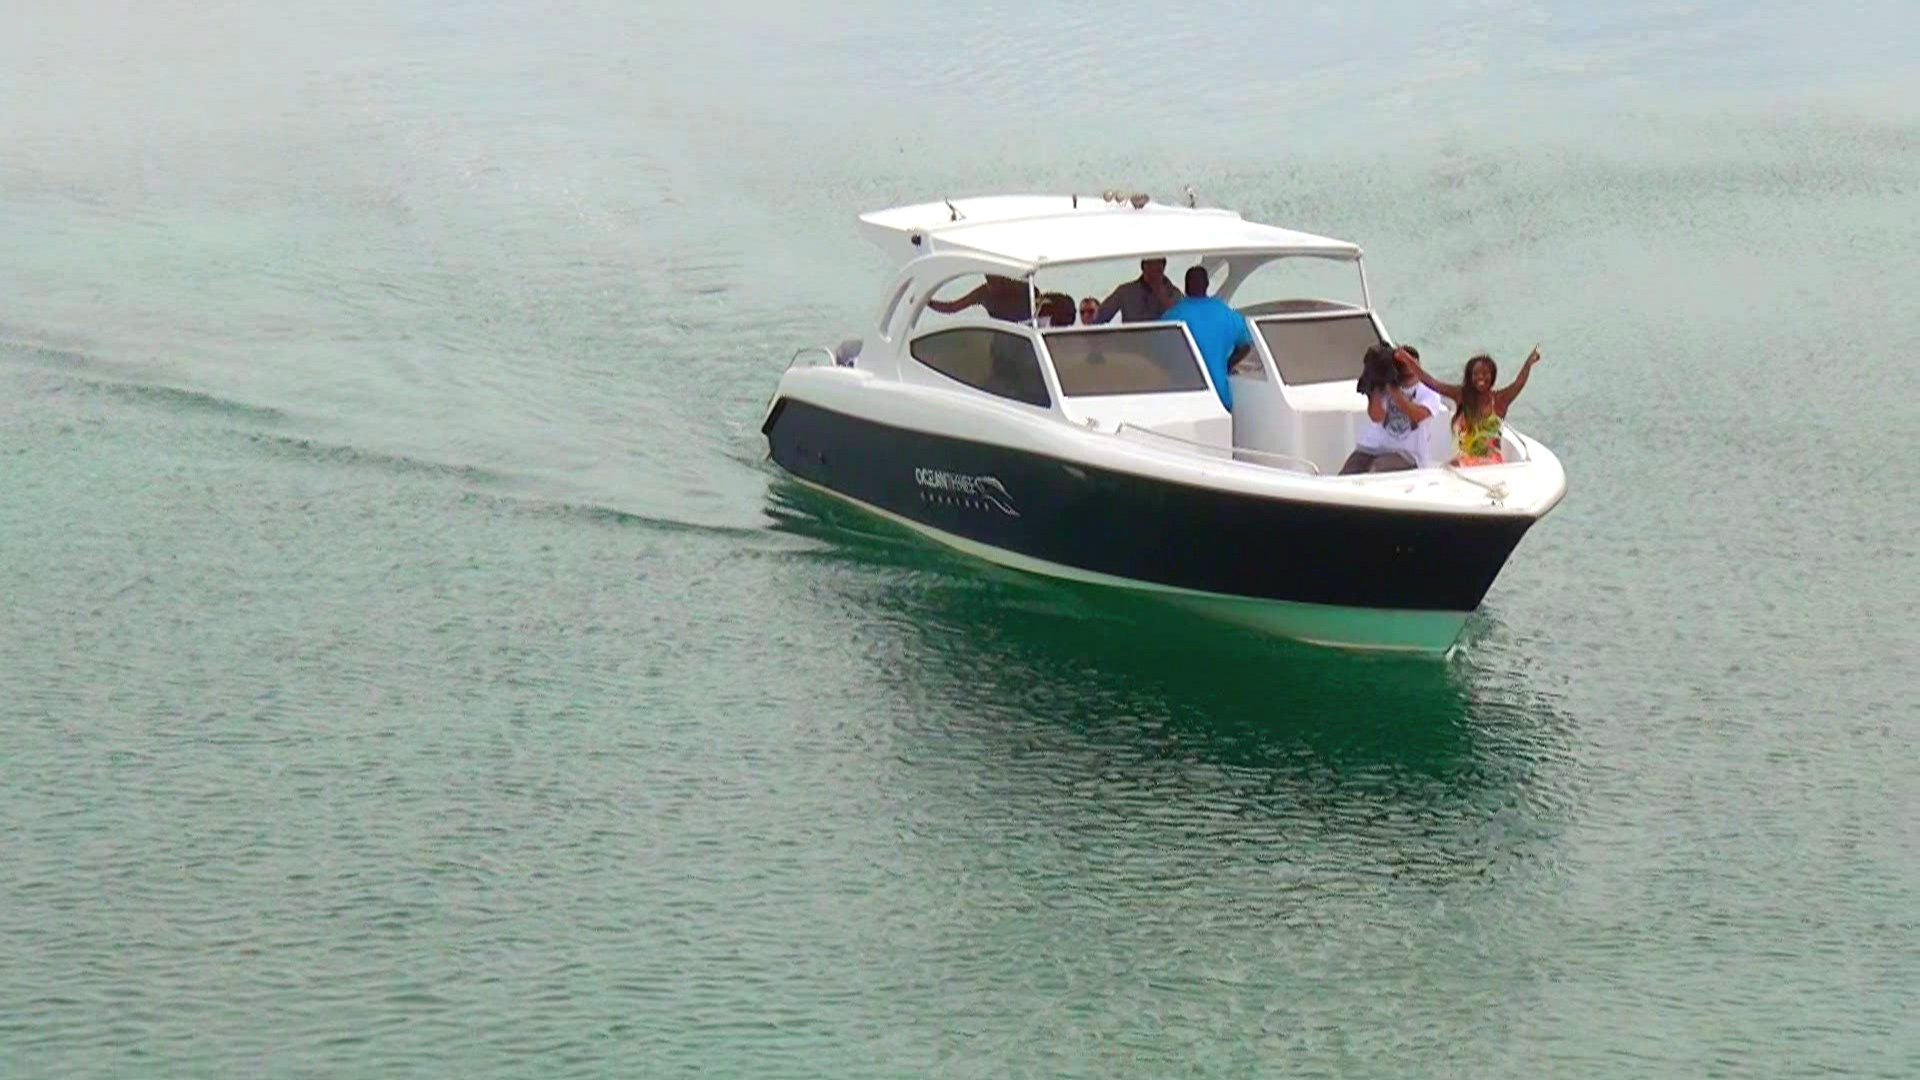 Naomi arrives by boat to complete the Anguilla crew, giving Renee some much-needed company.